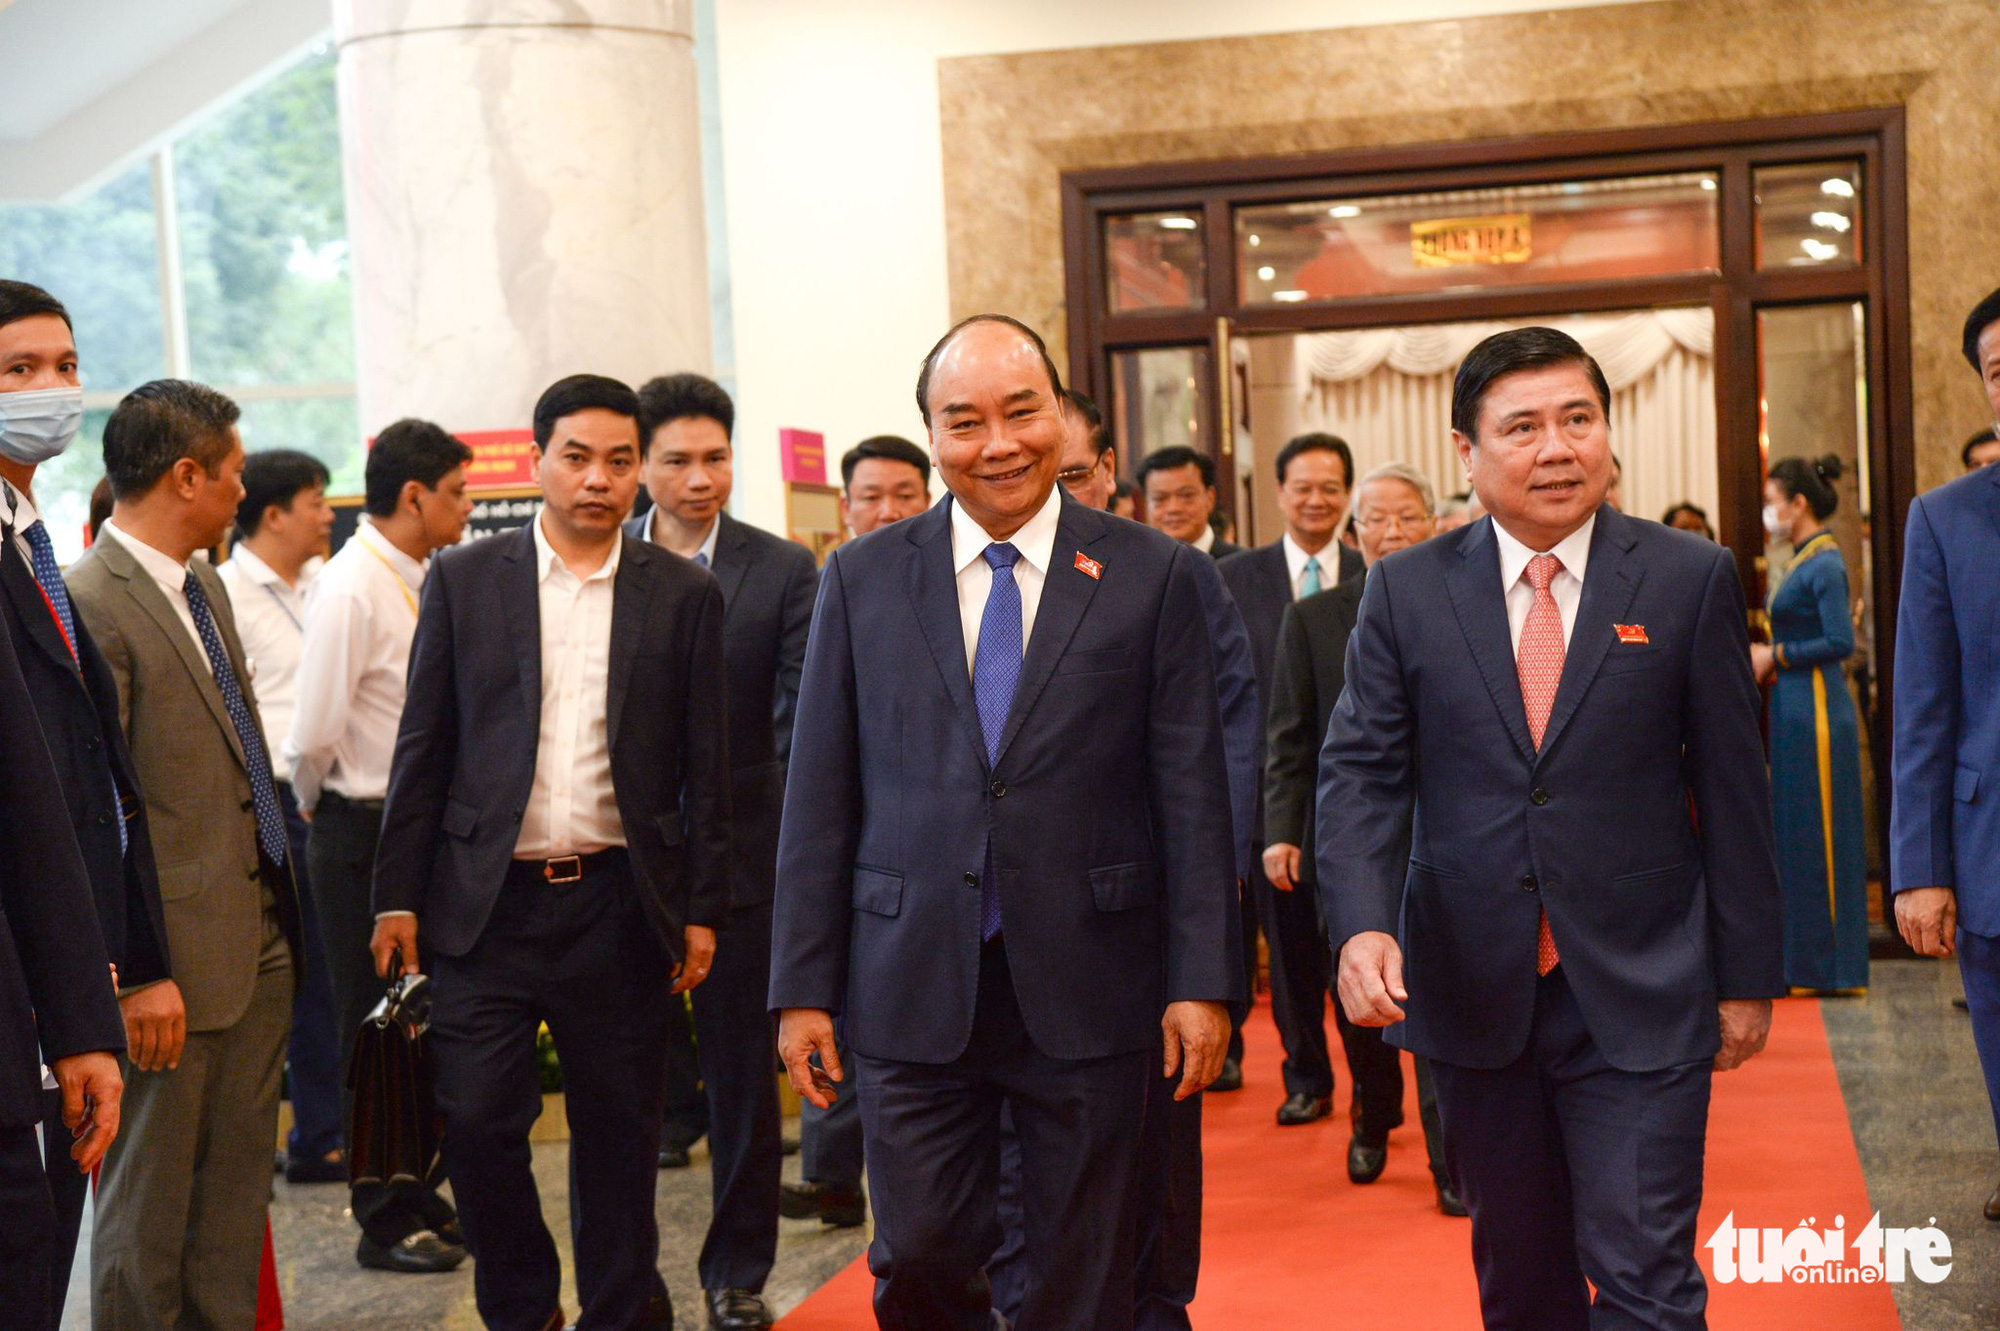 Prime Minister Nguyen Xuan Phuc (L) and Ho Chi Minh City Chairman Nguyen Thanh Phong arrive at the city's 11th Party Congress on October 15, 2020. Photo: Tu Trung / Tuoi Tre